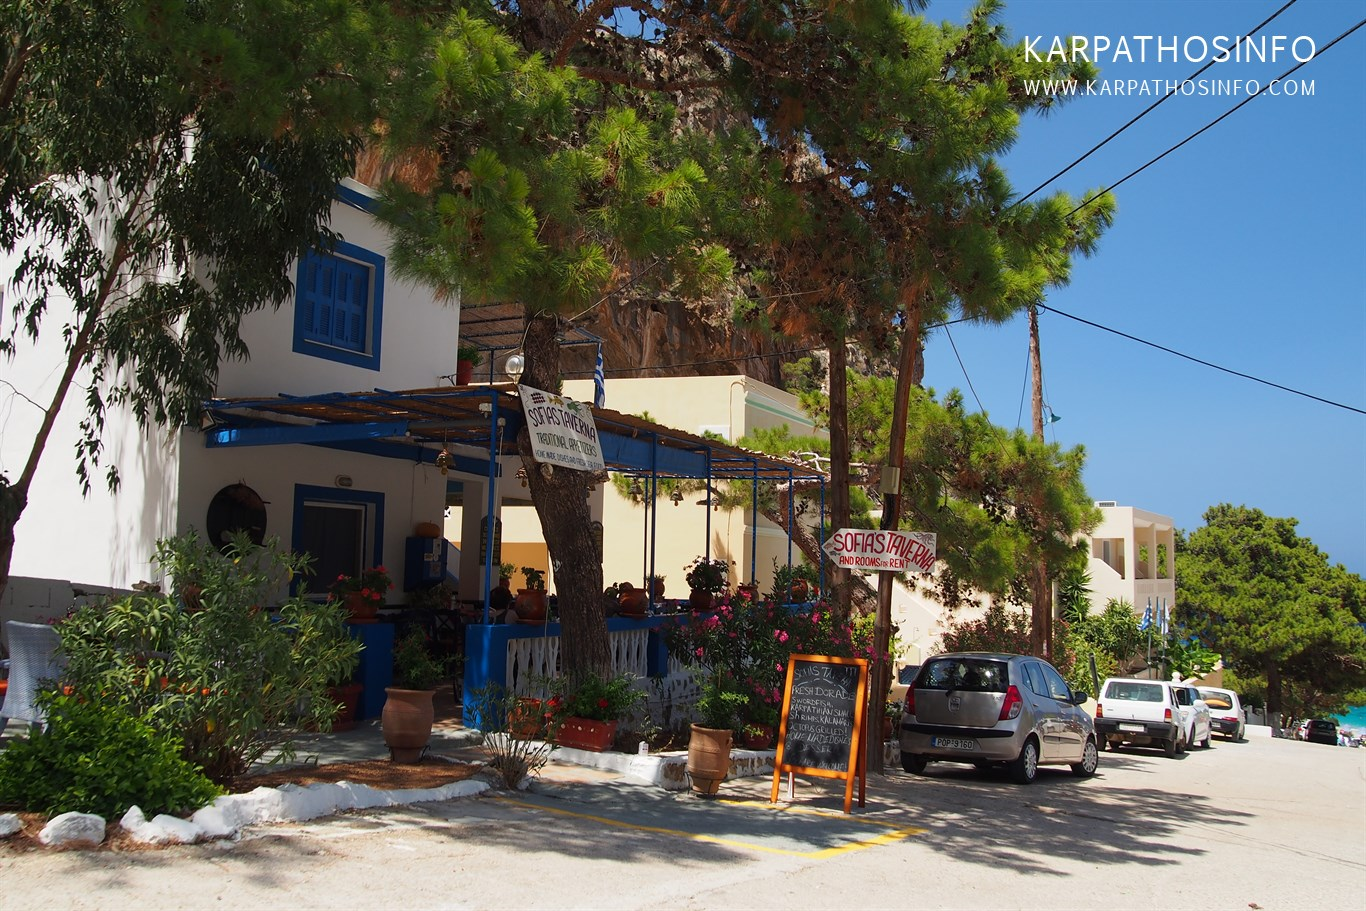 Apartments and taverns in Kyra Panagia